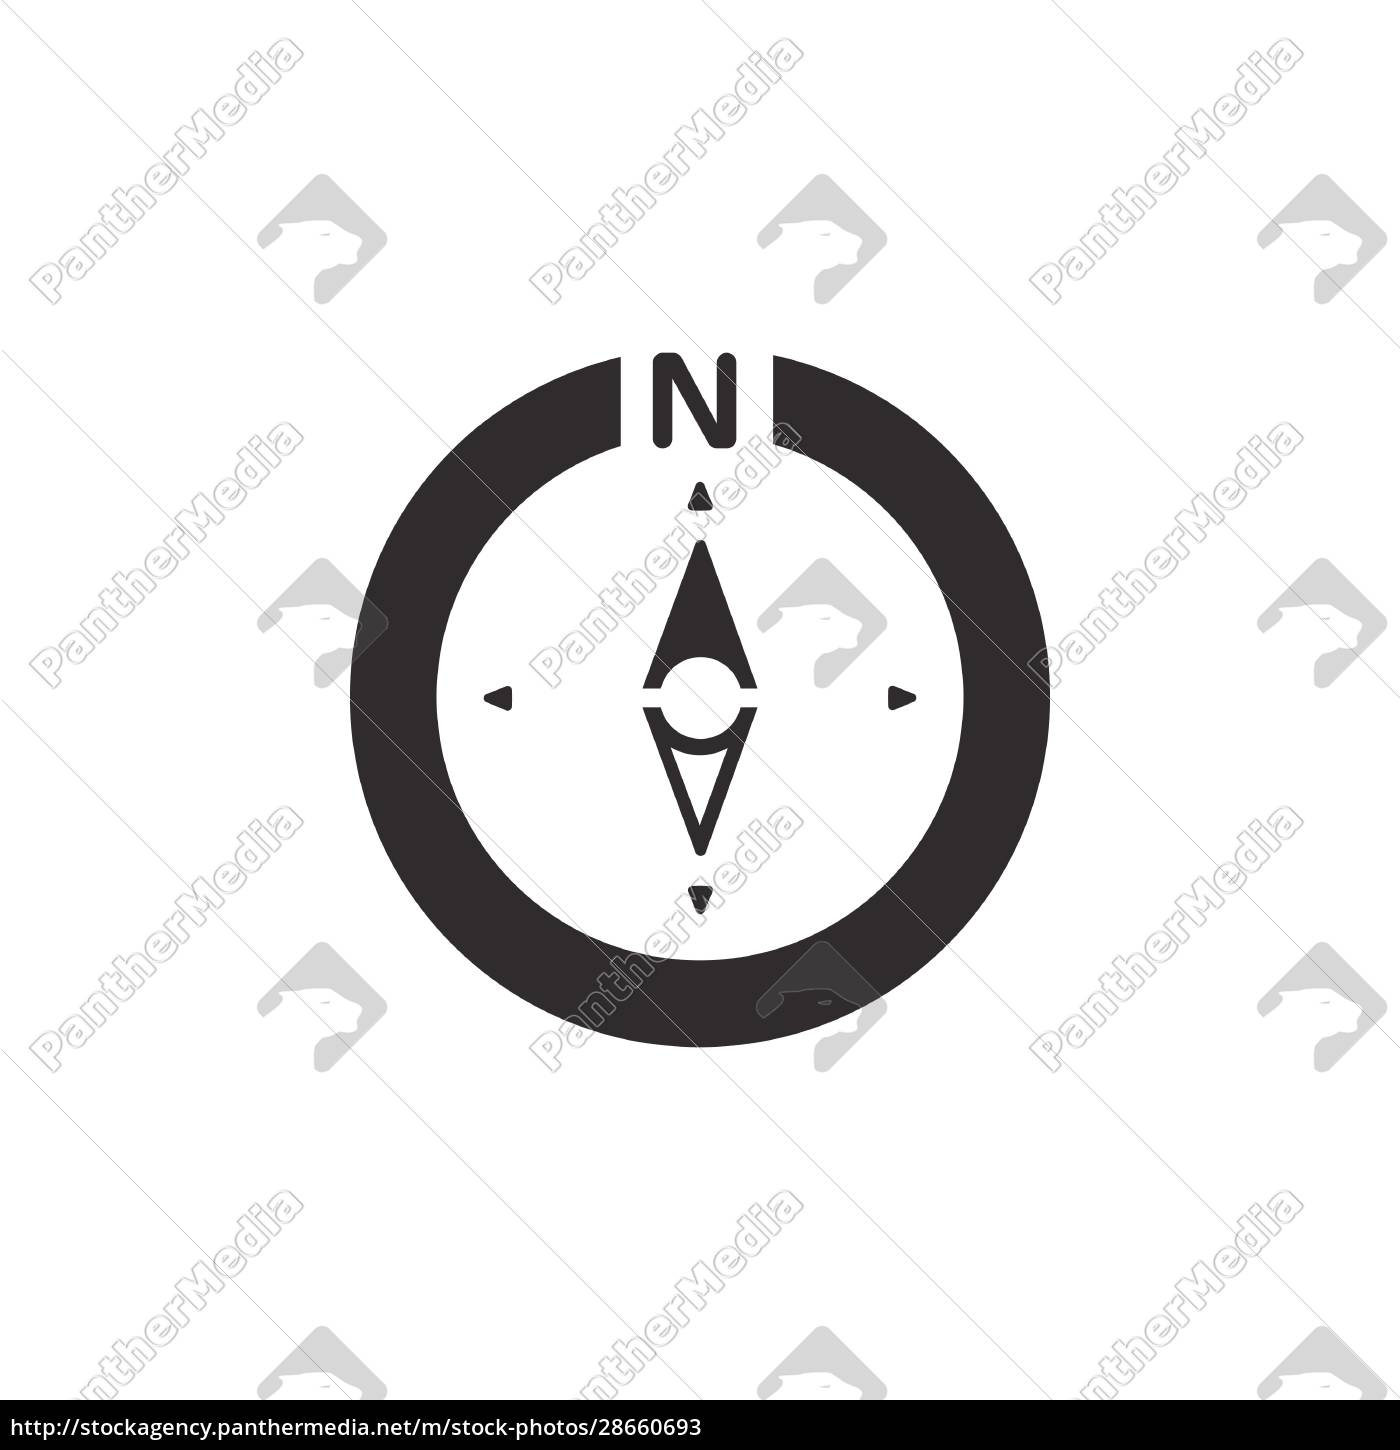 compass., north, direction., icon., weather, glyph - 28660693